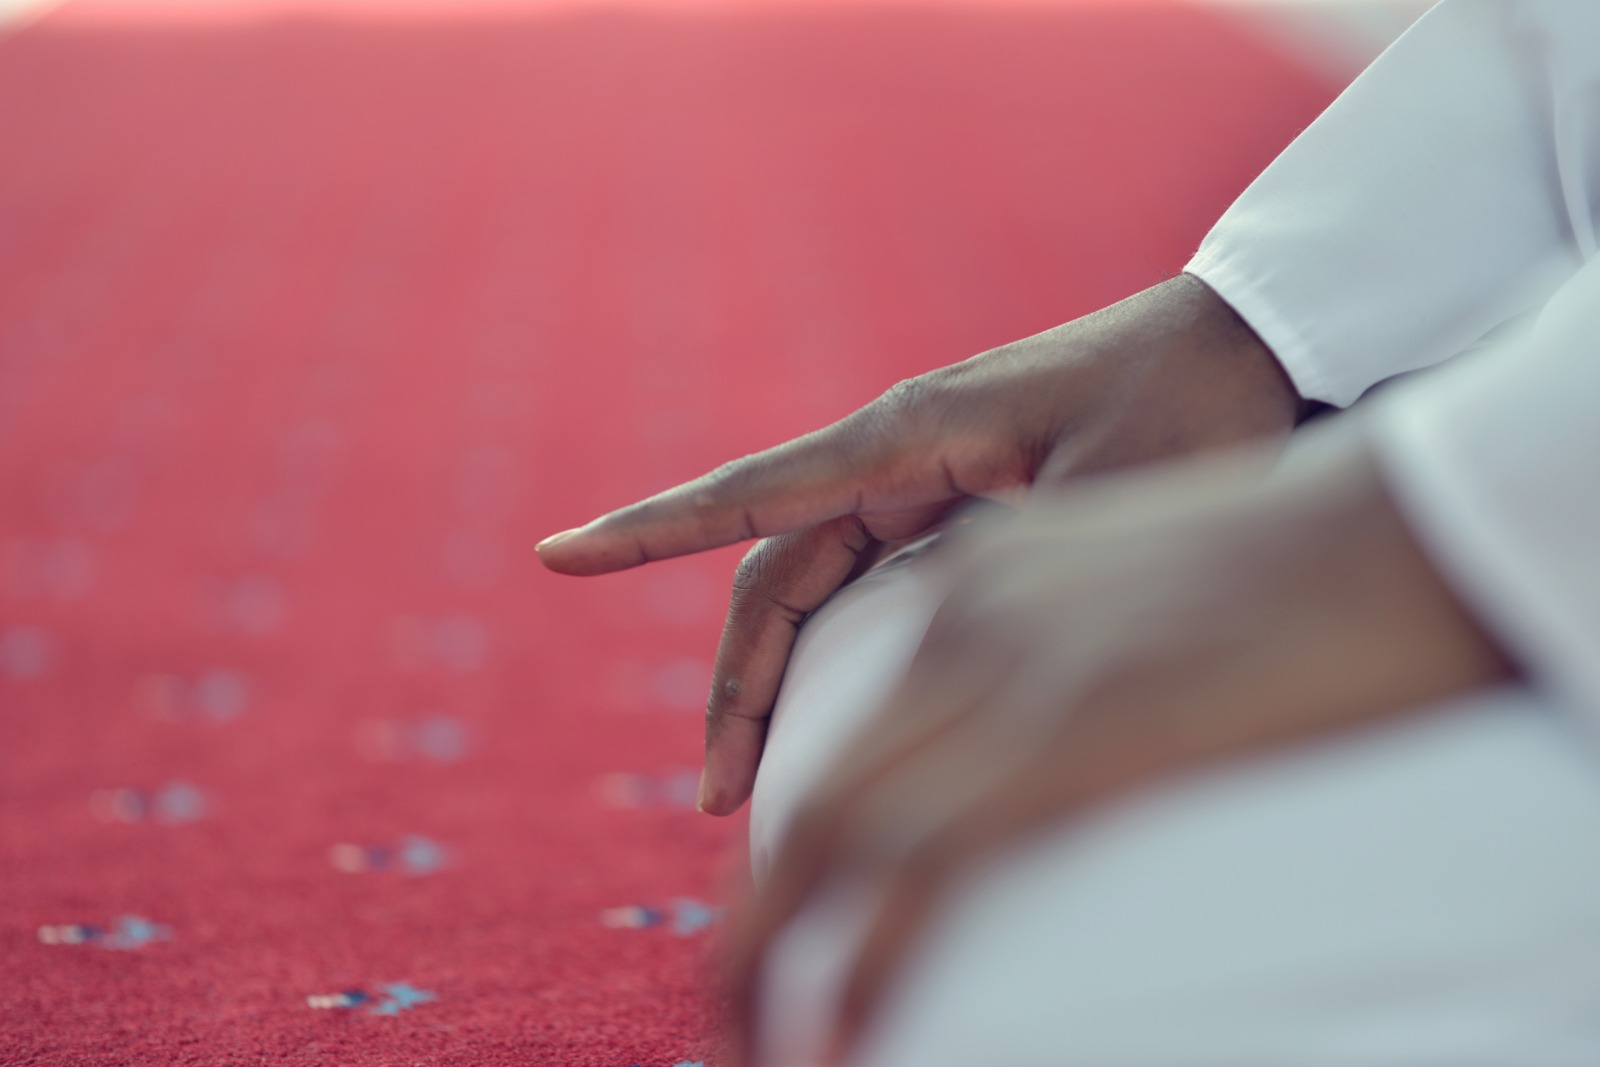 Moving The Index Finger In Tashahhud During Prayer